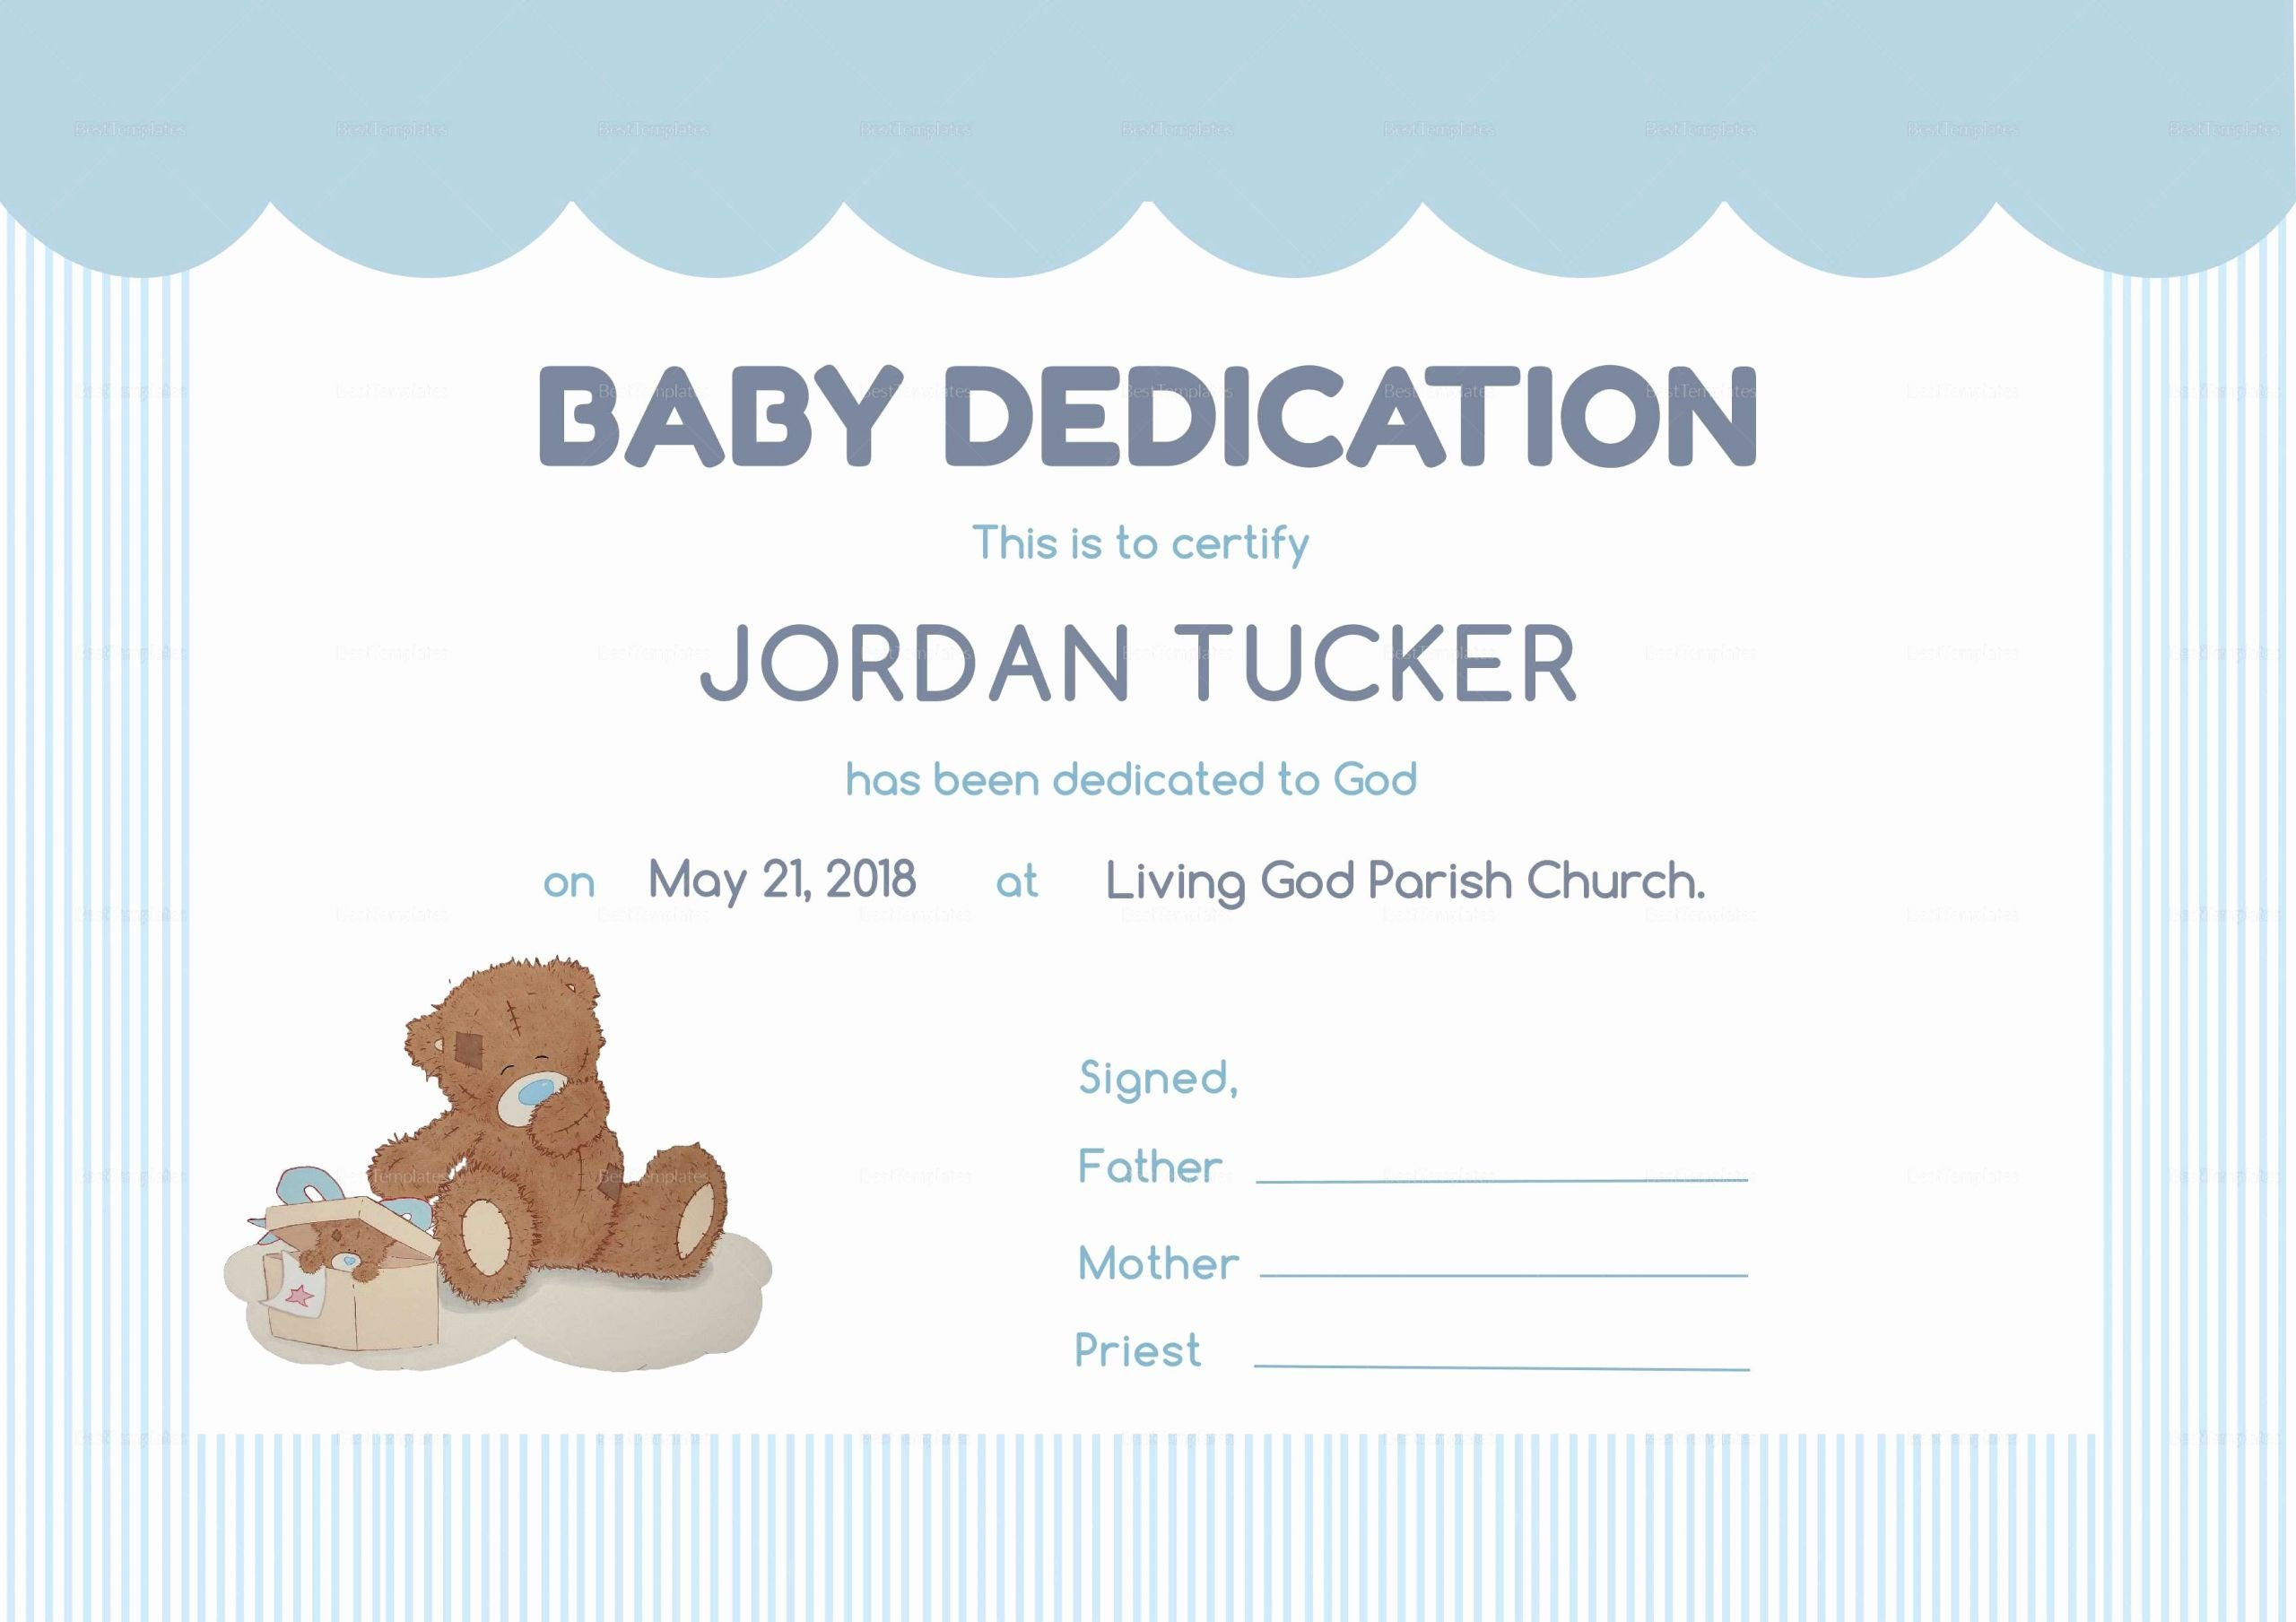 Child Dedication Certificate Template Luxury Child Dedication Certificate Clean Baby Dedication